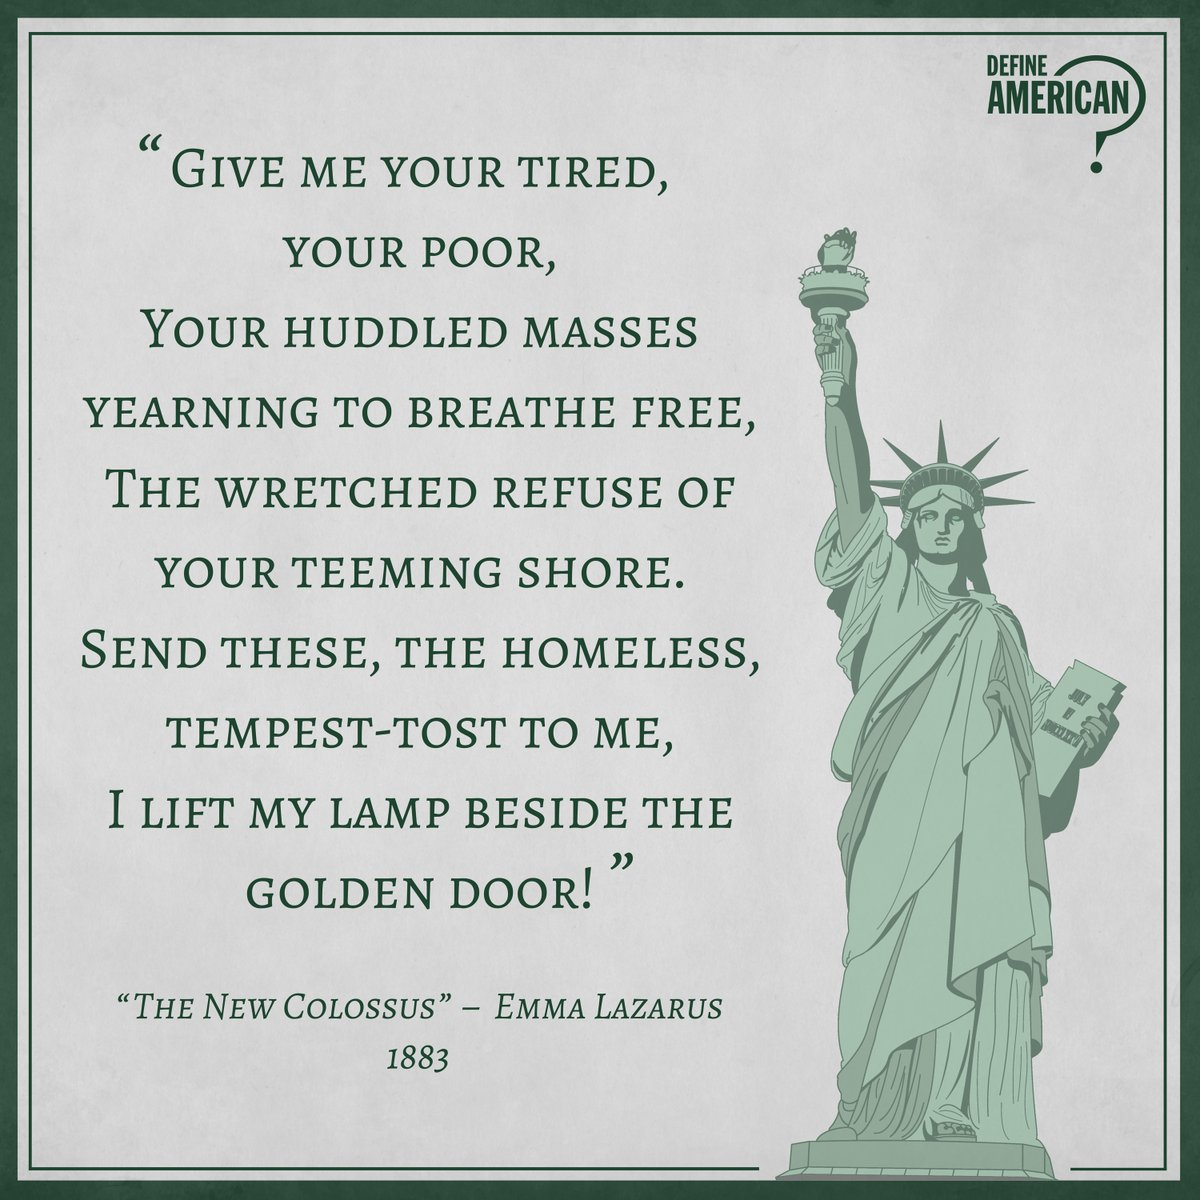 Statue Of Liberty Poem Goodolewoody S Blog And Website